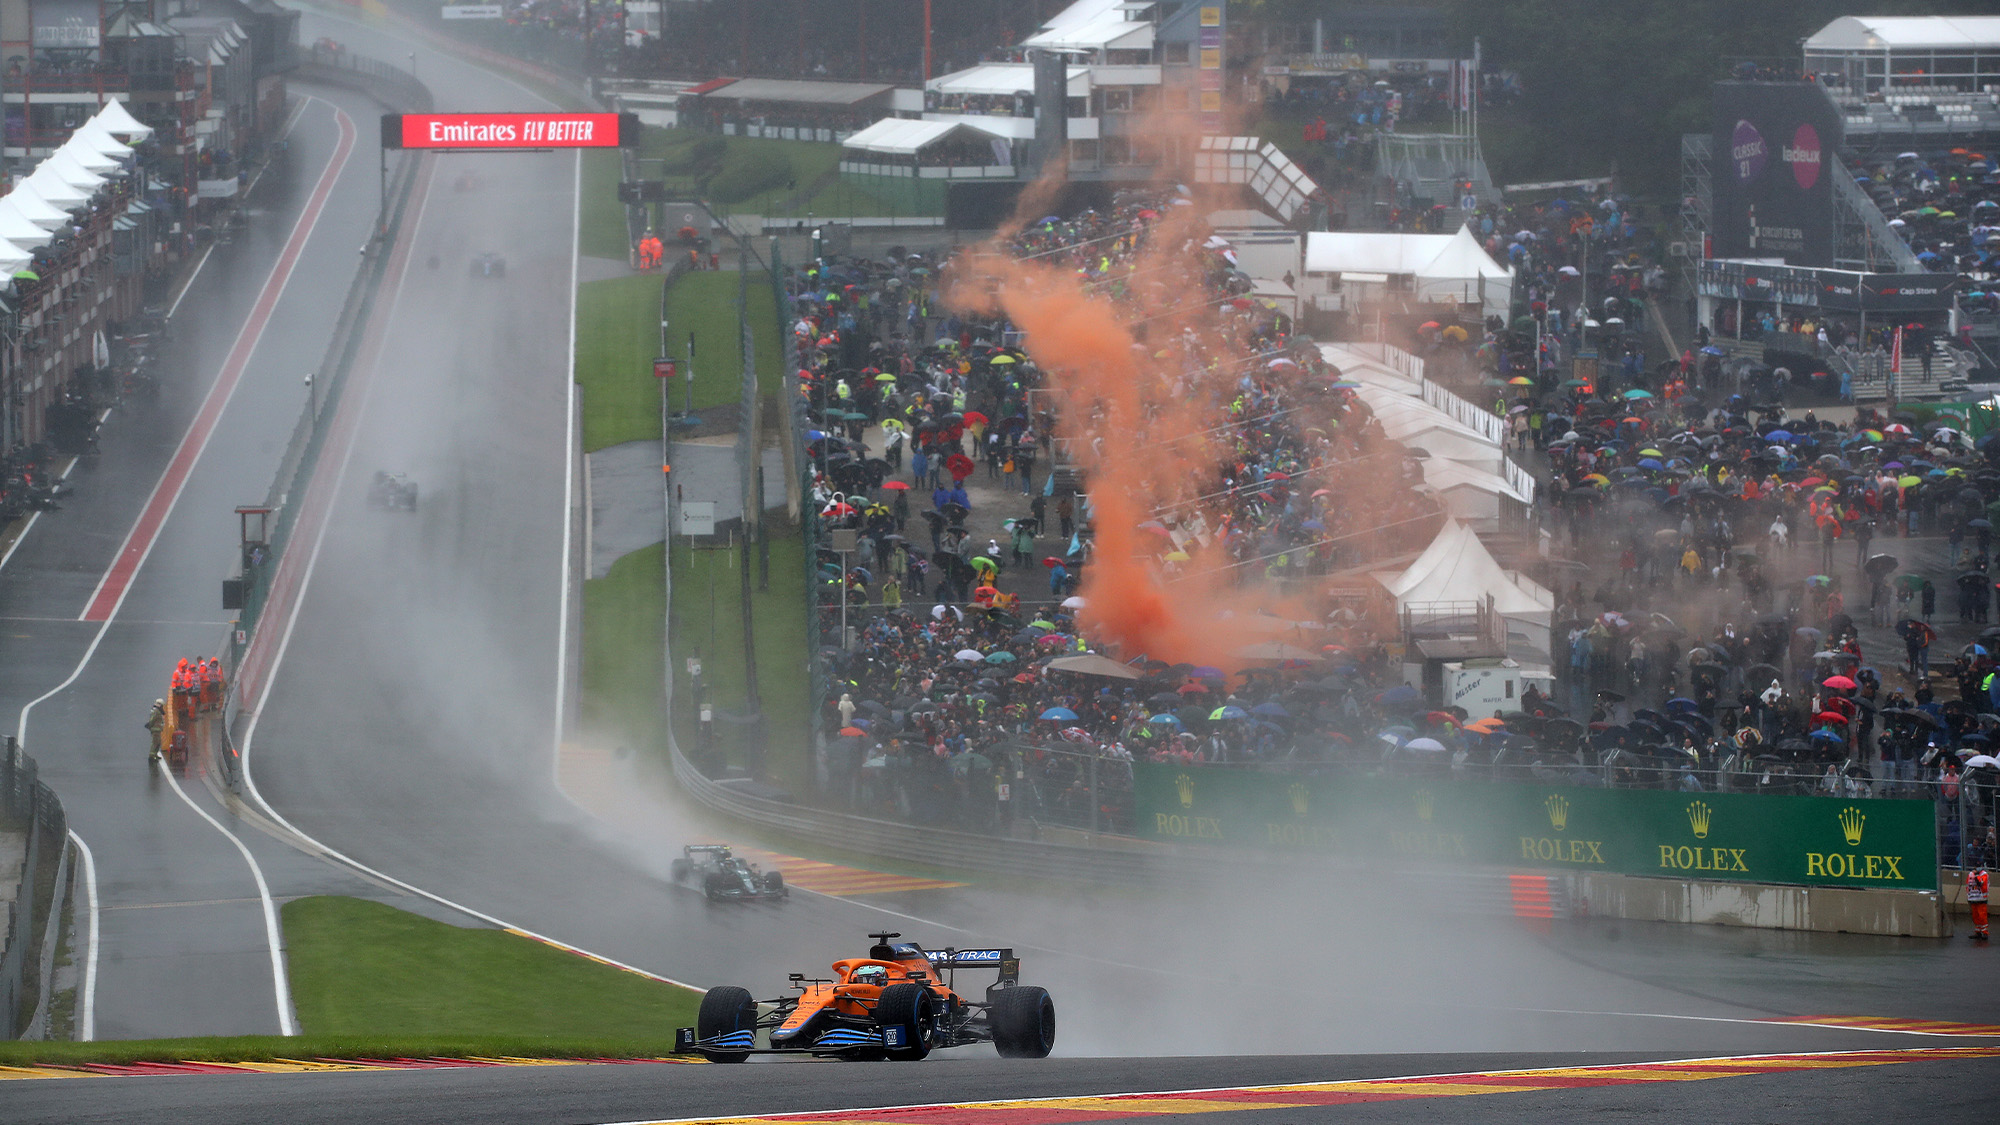 Spray as cars go through Eau Rouge at the 2021 Belgian Grand Prix